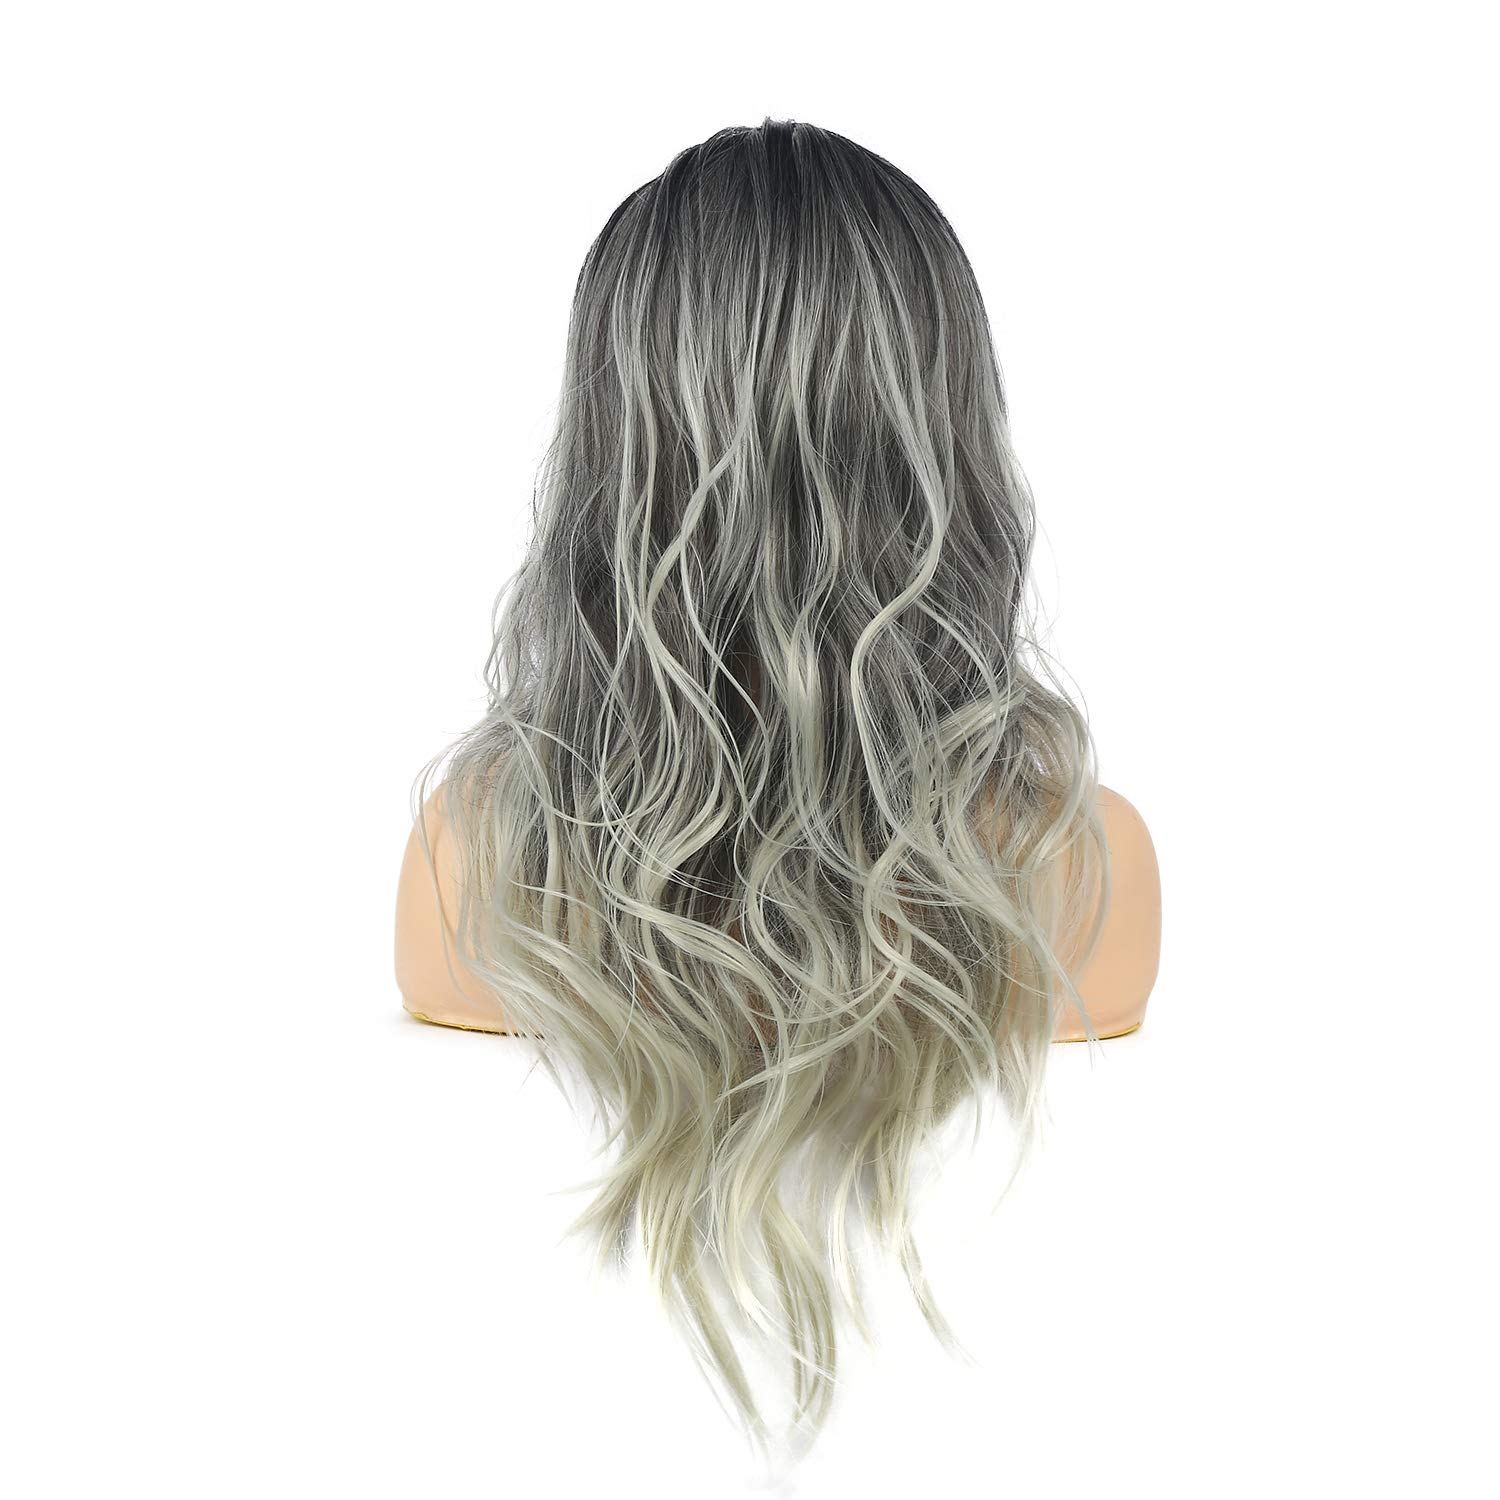 Sallcks Womens Long Curly Wavy Ombre Gray Wigs Dyeing Color Synthetic Replacement Wigs Heat Resistant Party Daily Wig with Wig Cap